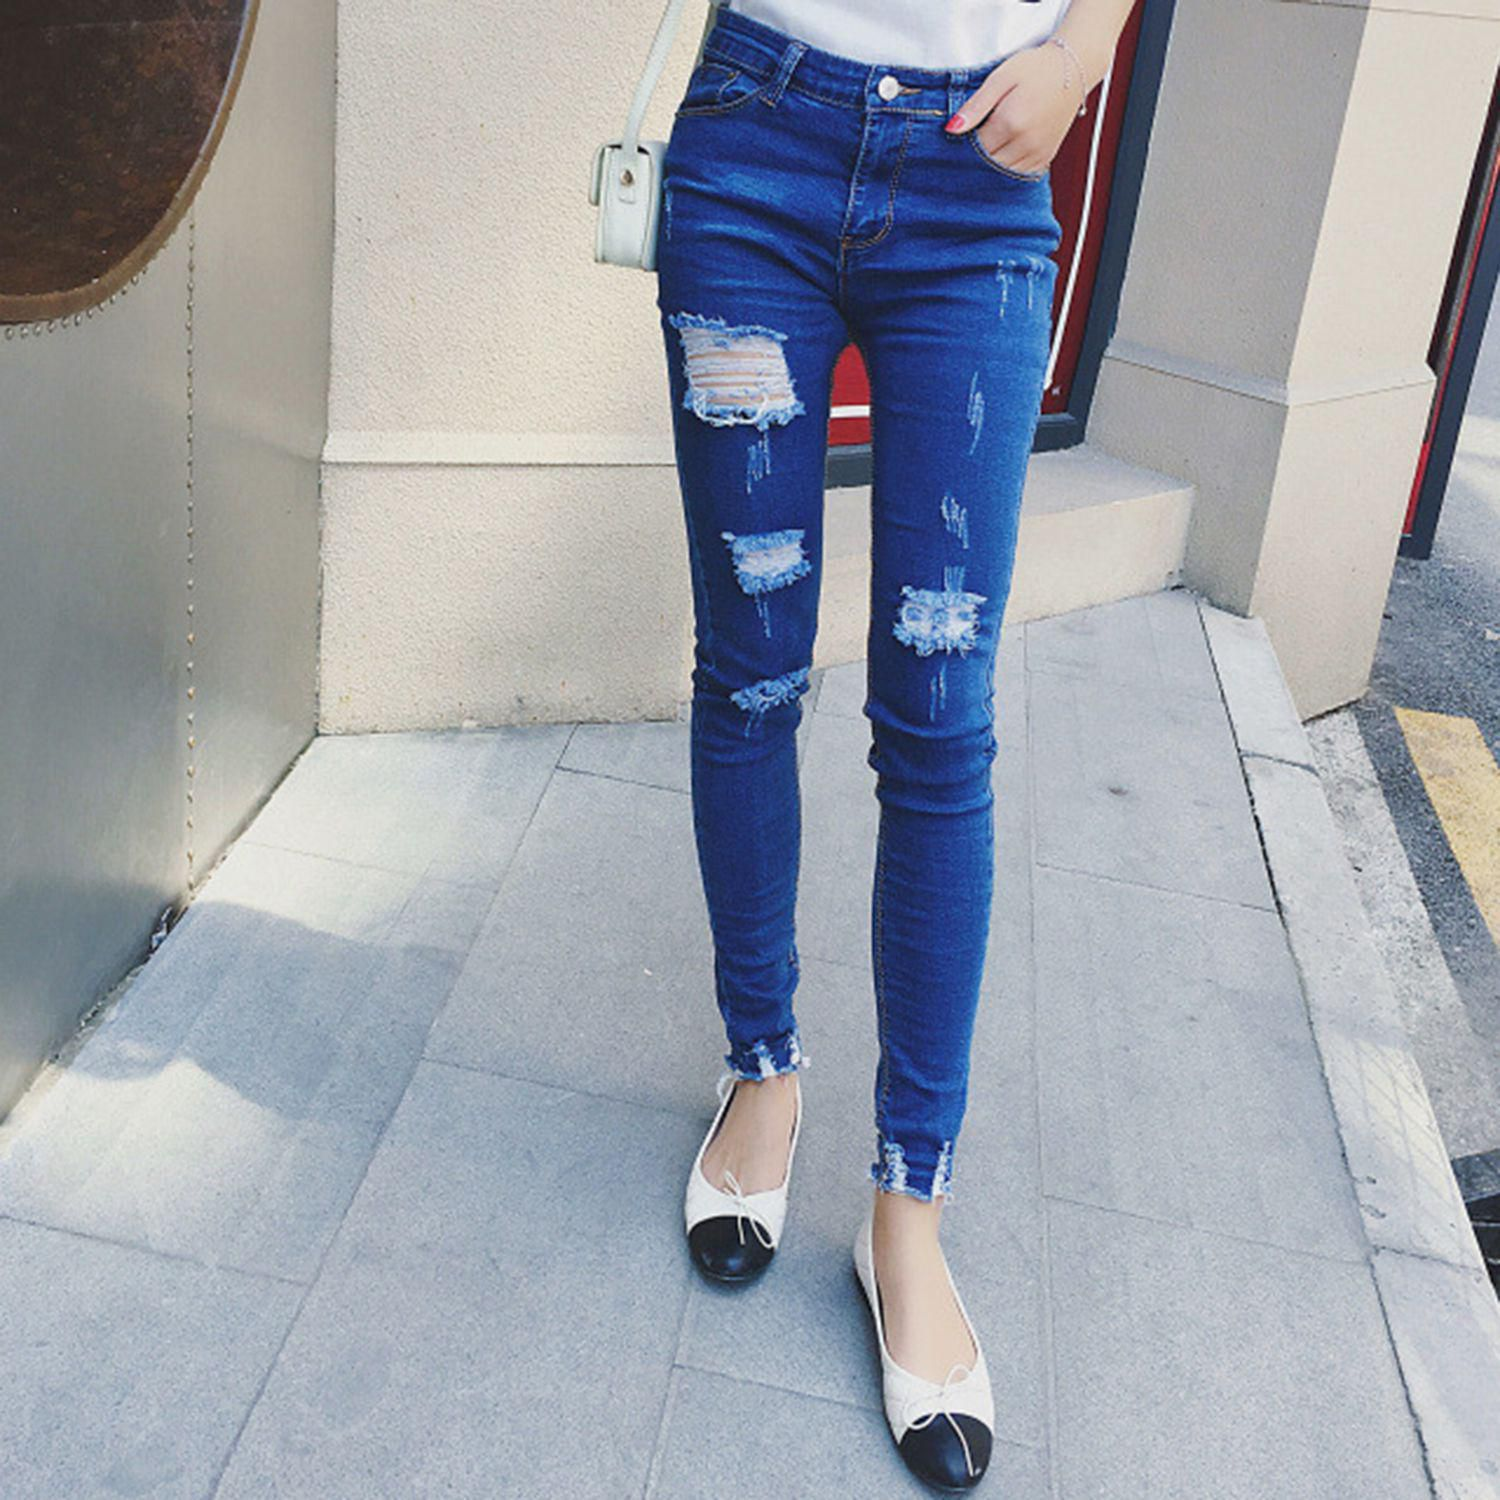 High Waist Jeans Slim Tight Straight Trousers Hole Pants Woman Fashion Jeans